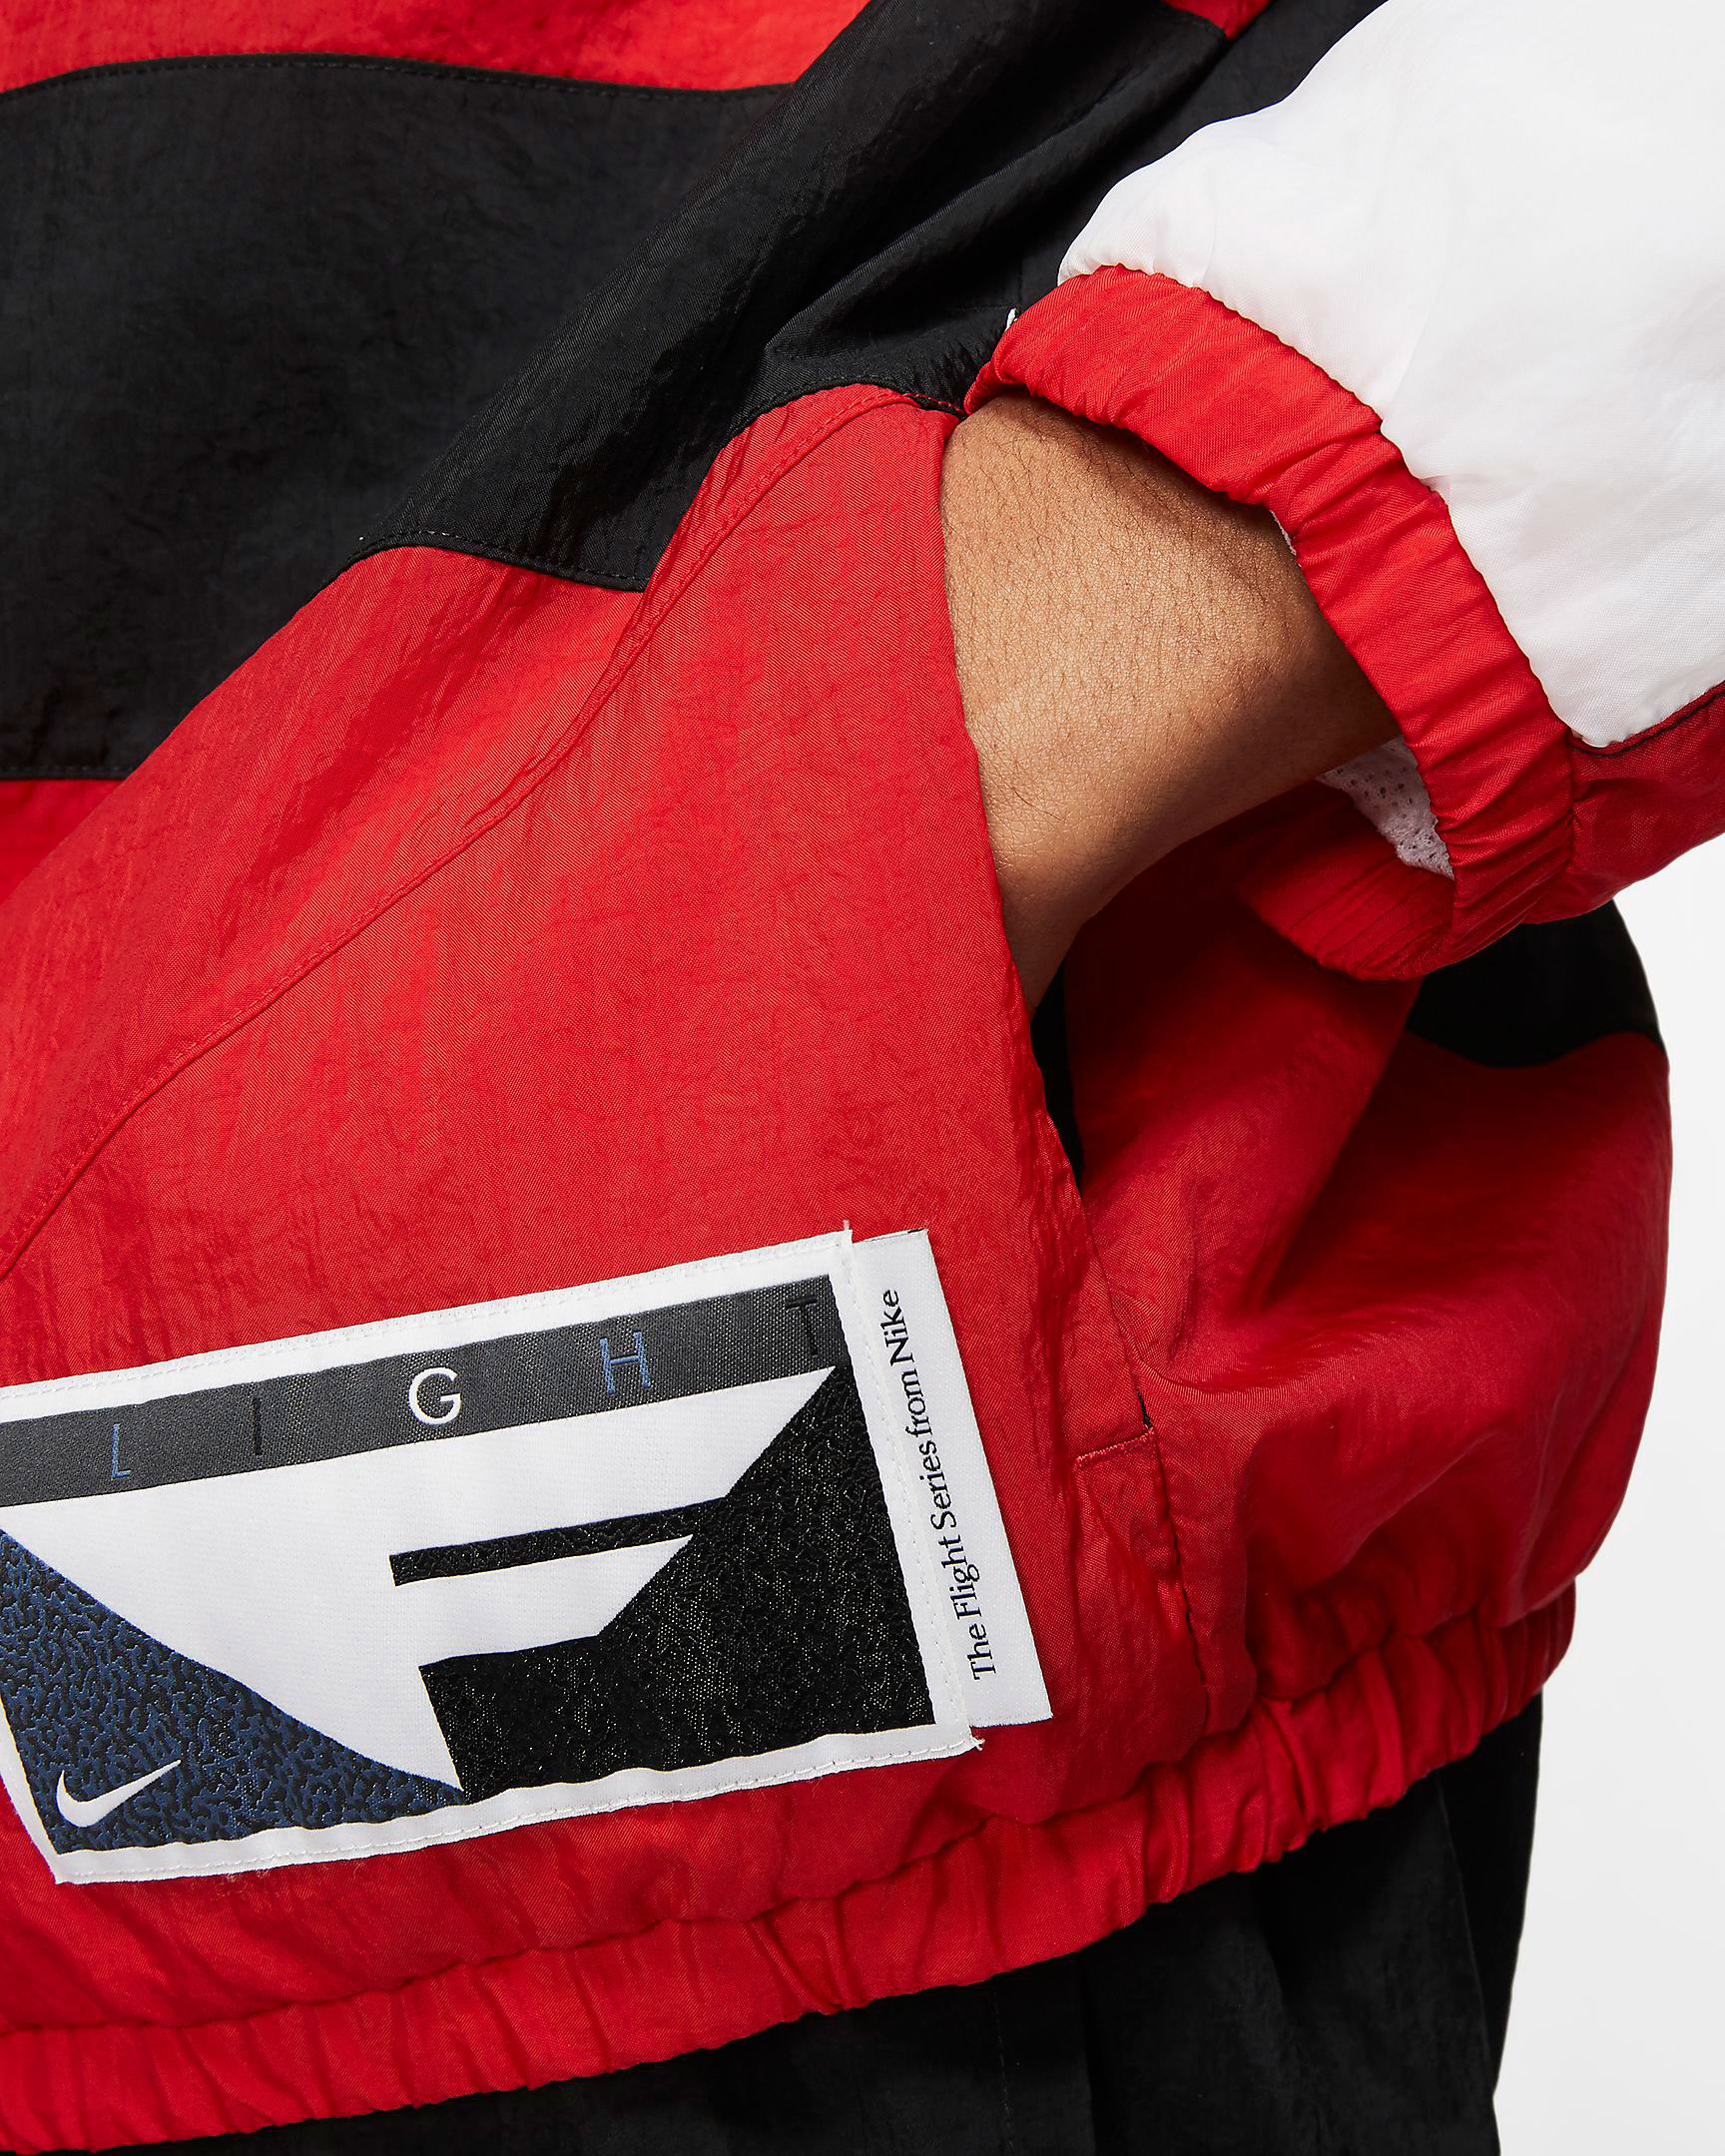 jordan-5-fire-red-nike-flight-jacket-3